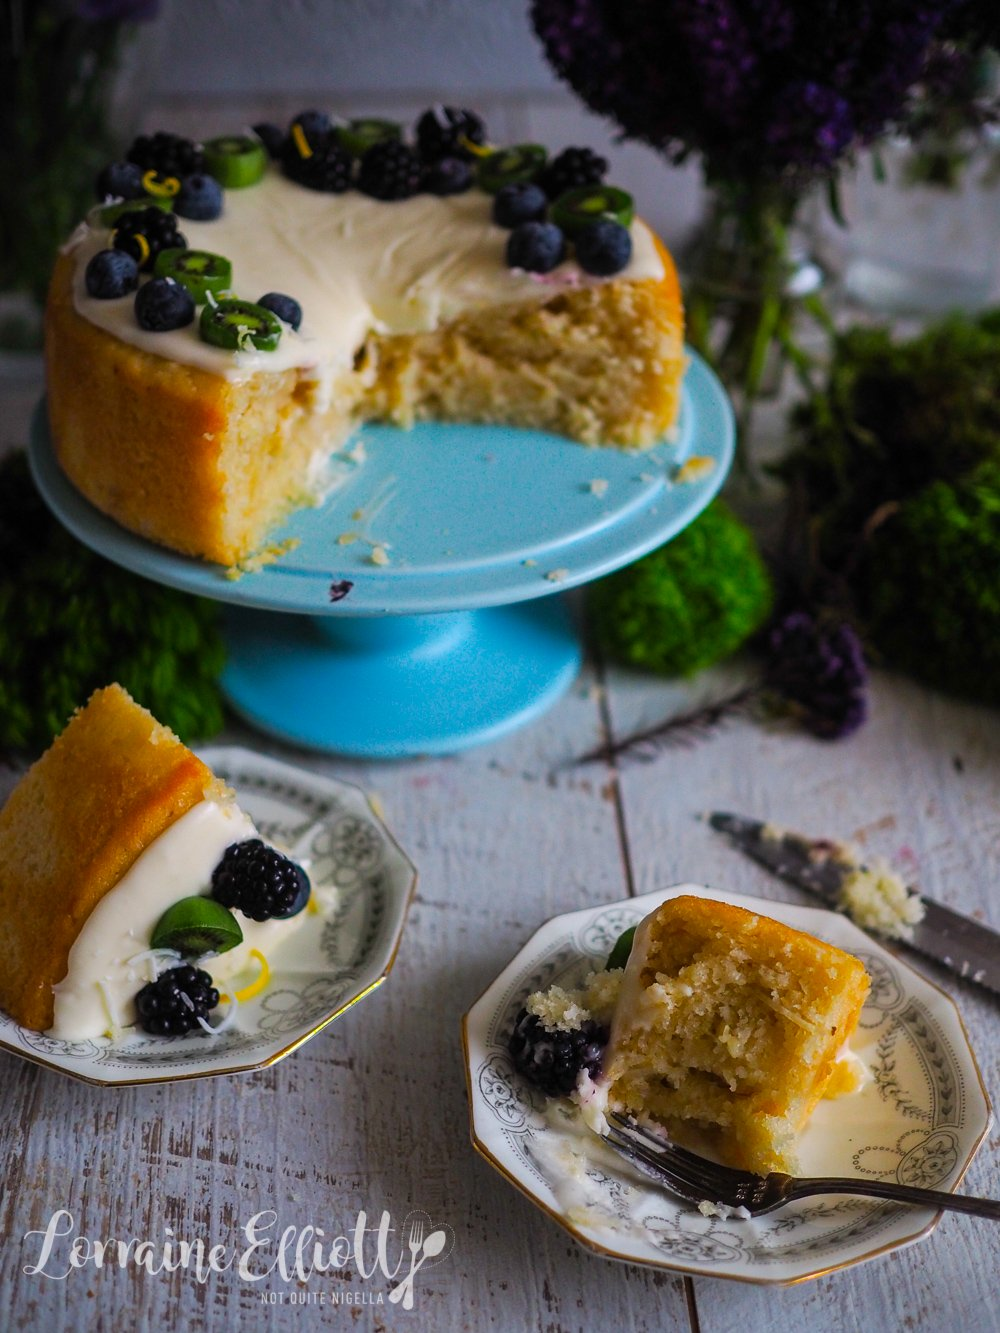 Vegan Lemon Coconut Cake